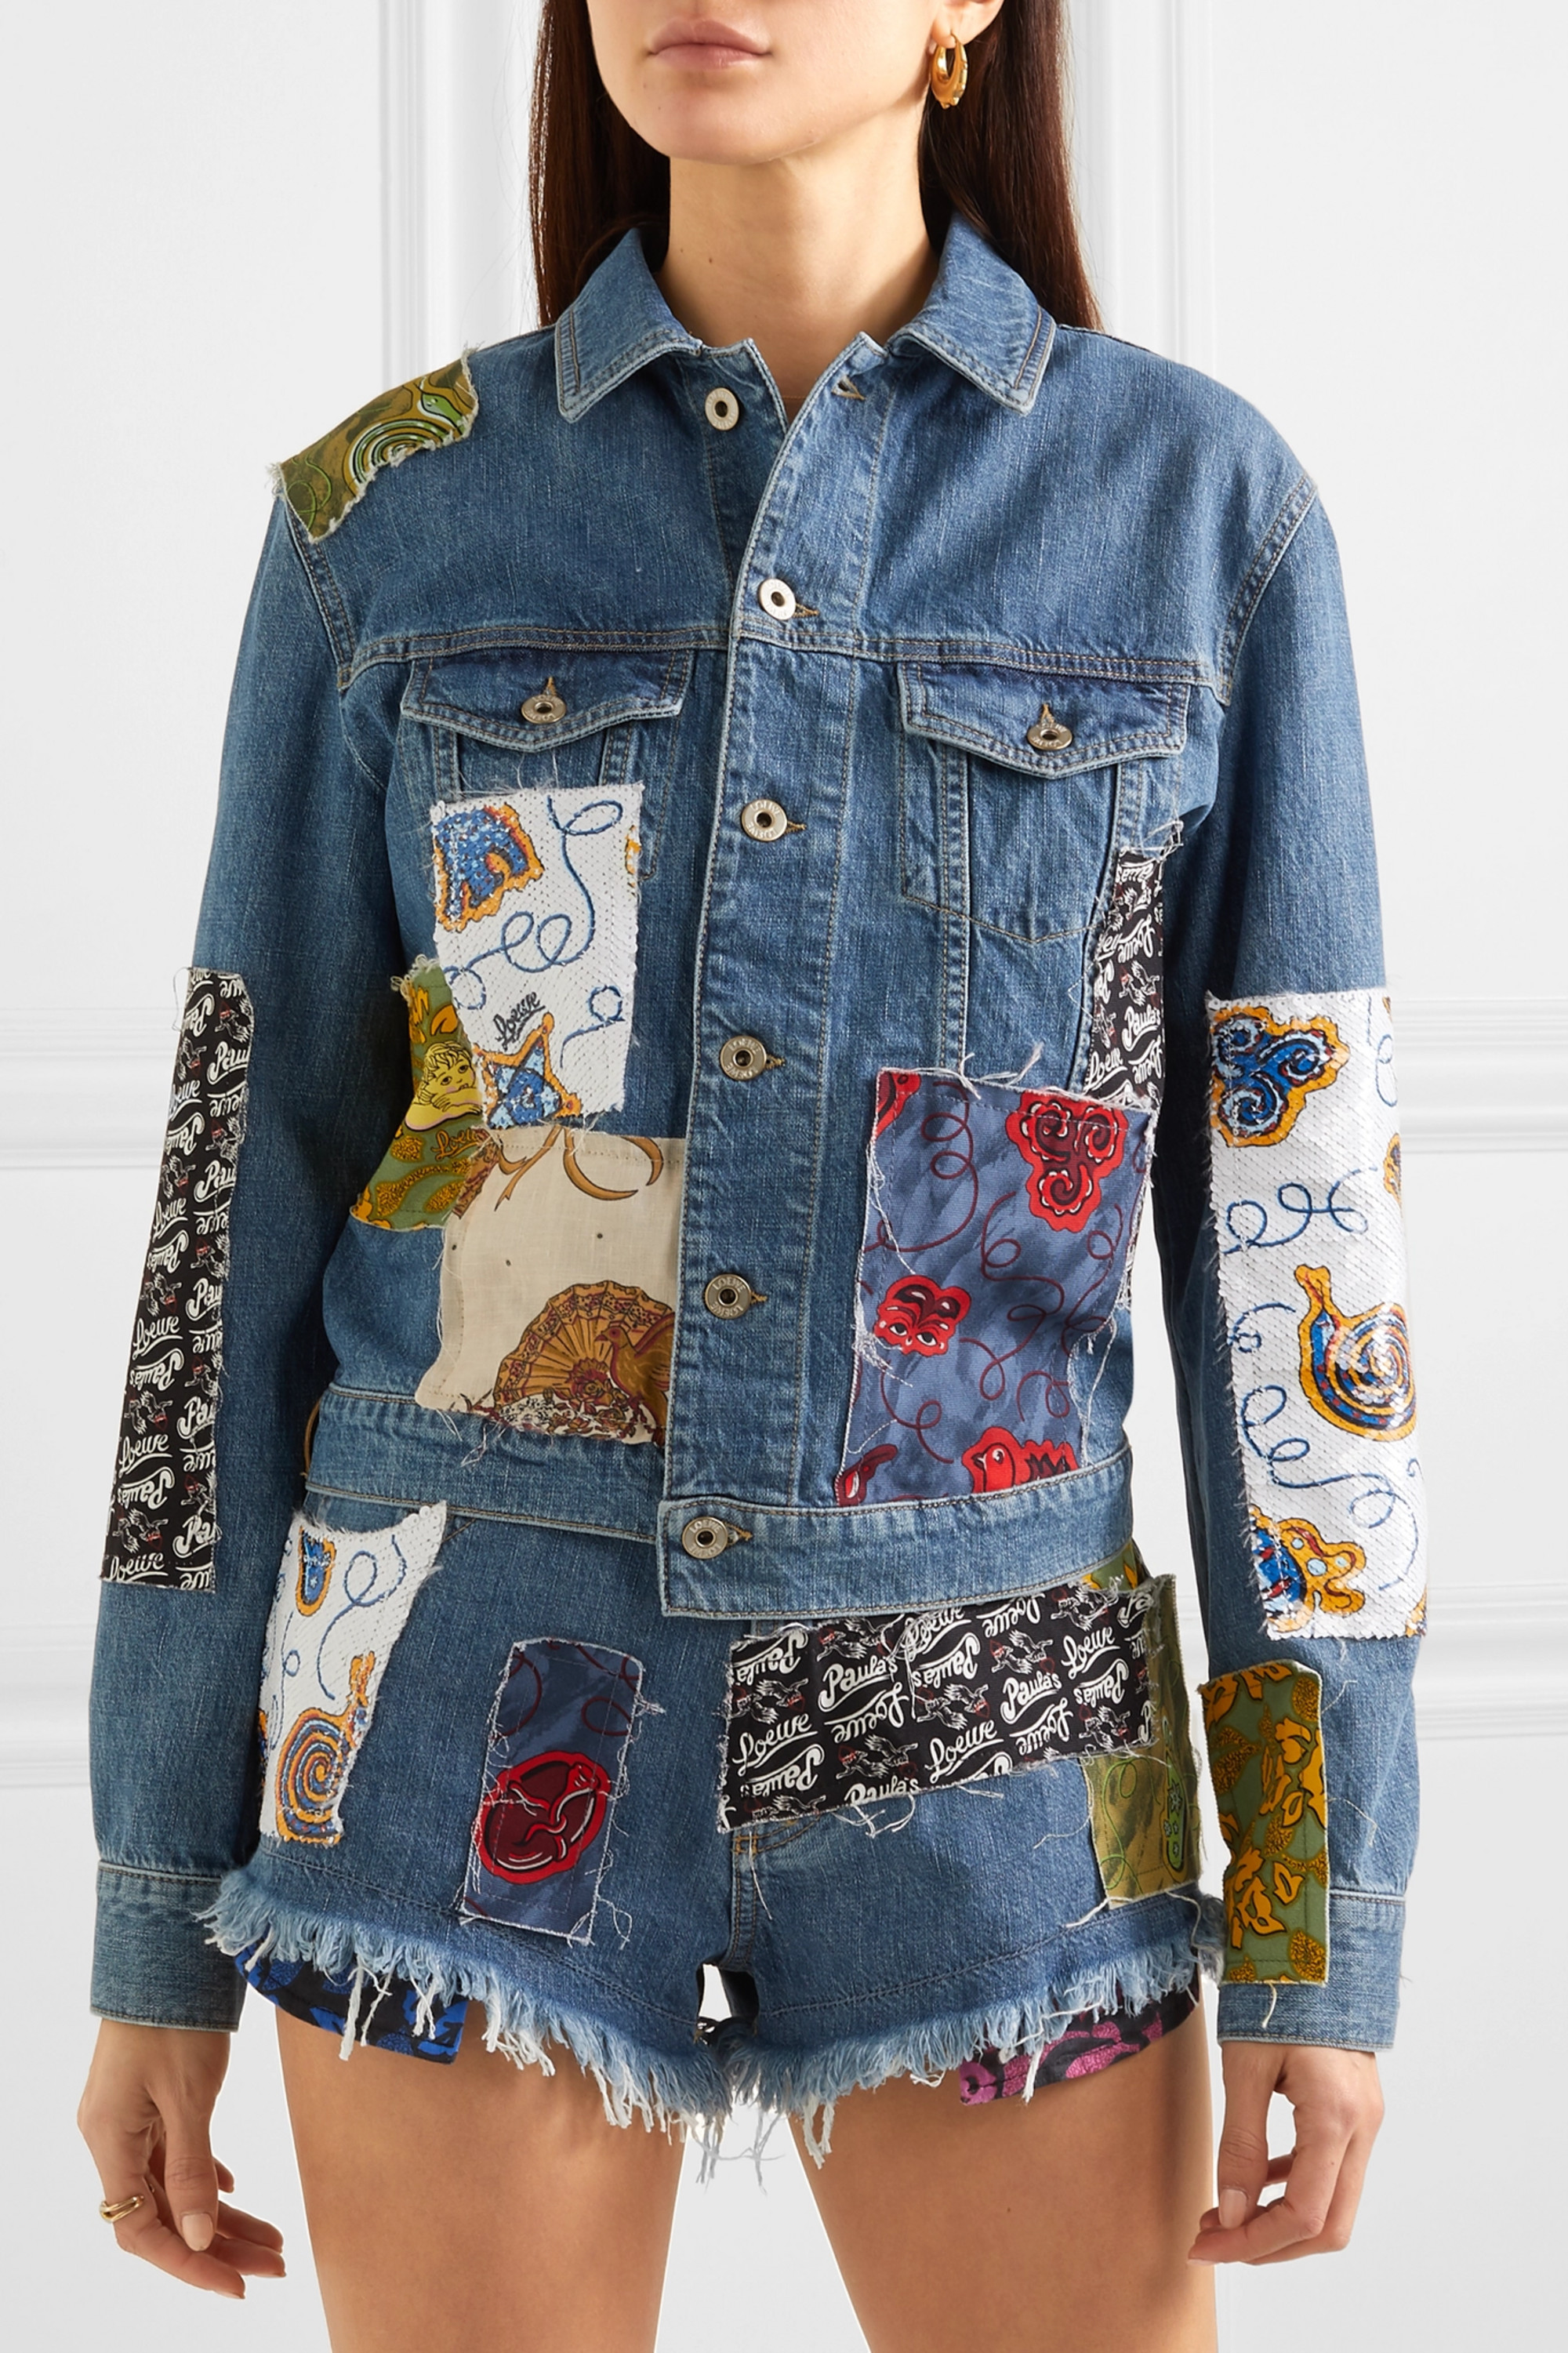 Loewe + Paula's Ibiza cropped patchwork printed voile and denim jacket